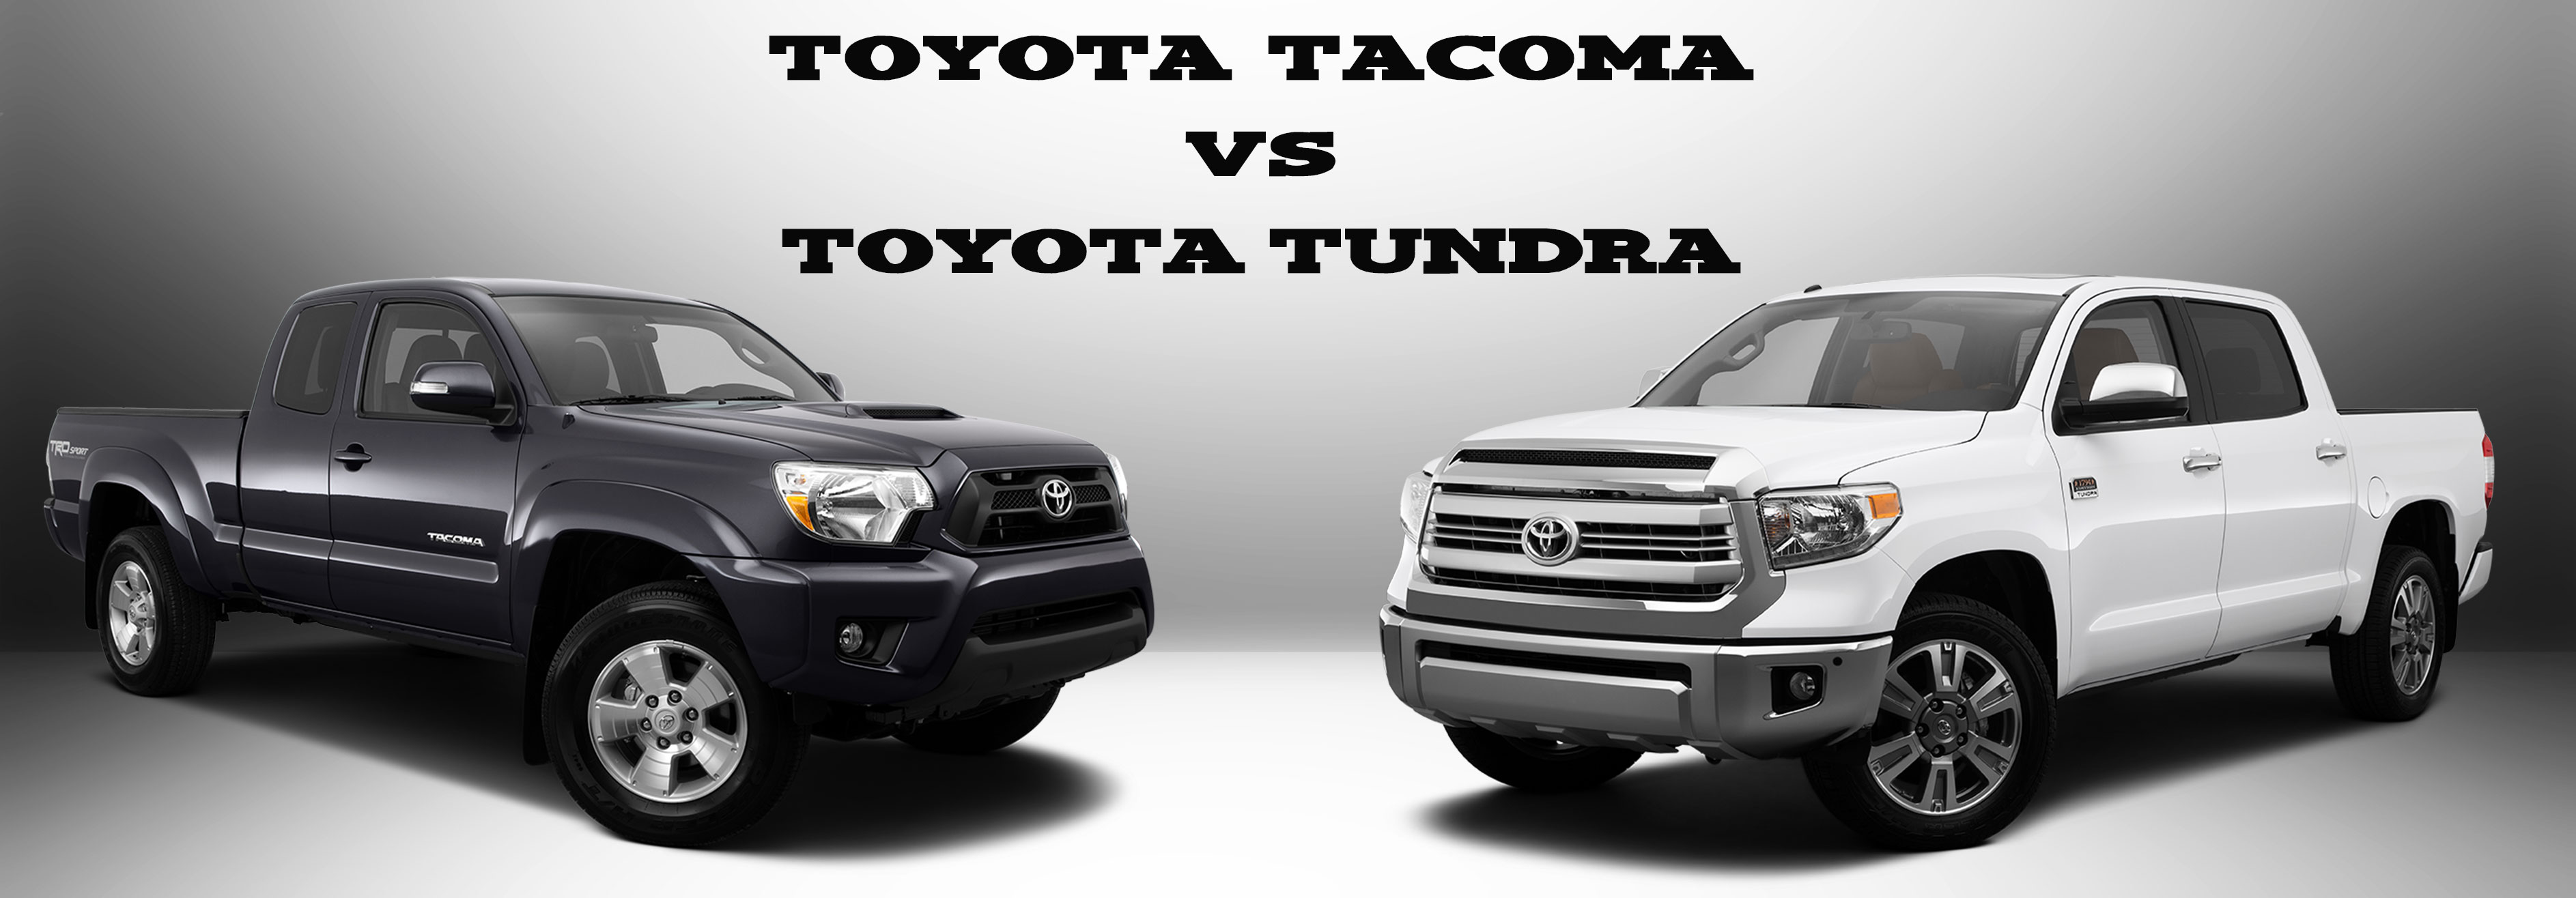 Toyota Tacoma Vs Toyota Tundra Limbaugh Toyota Reviews